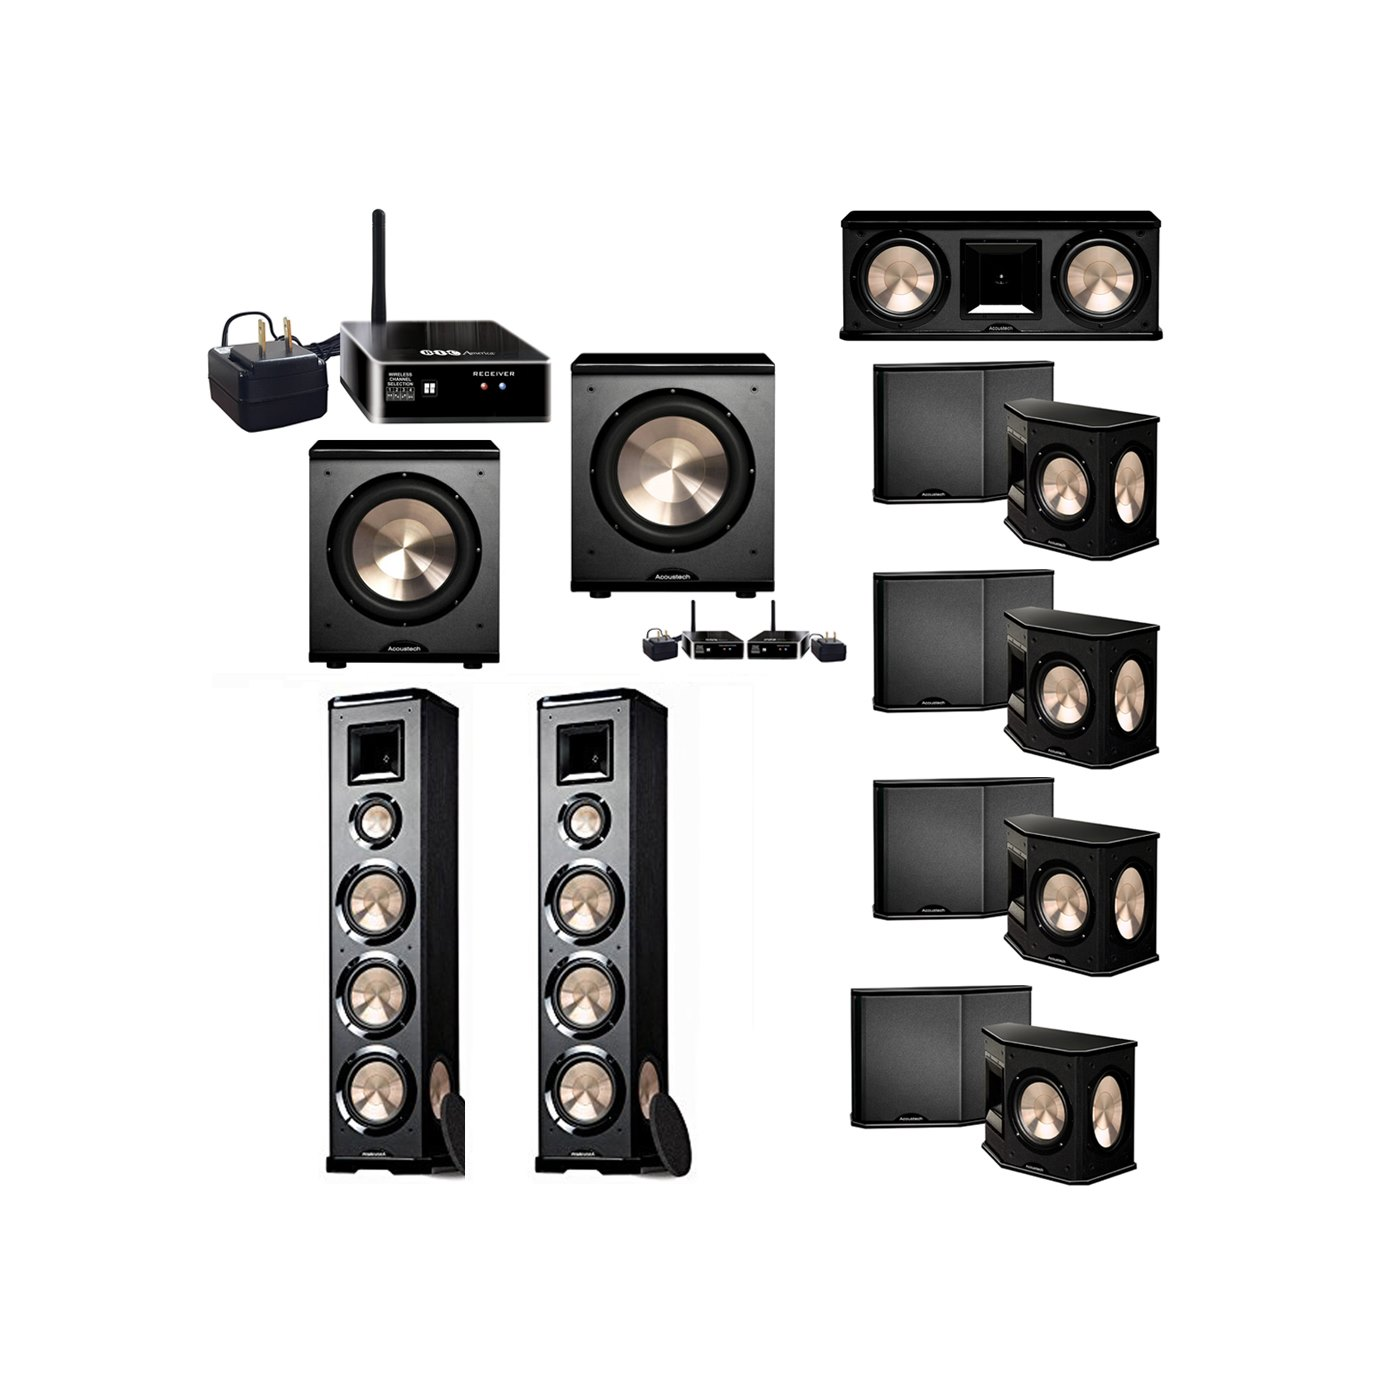 BIC Acoustech 7.2 System with 2 PL-980 Floorstanding Speakers, 1 PL-28 II Center Speaker, 4 PL-66 Surround Speakers, 1 PL-200 Wireless Subwoofer, 1 PL-200 Subwoofer, 2 Wireless Receiver Add on